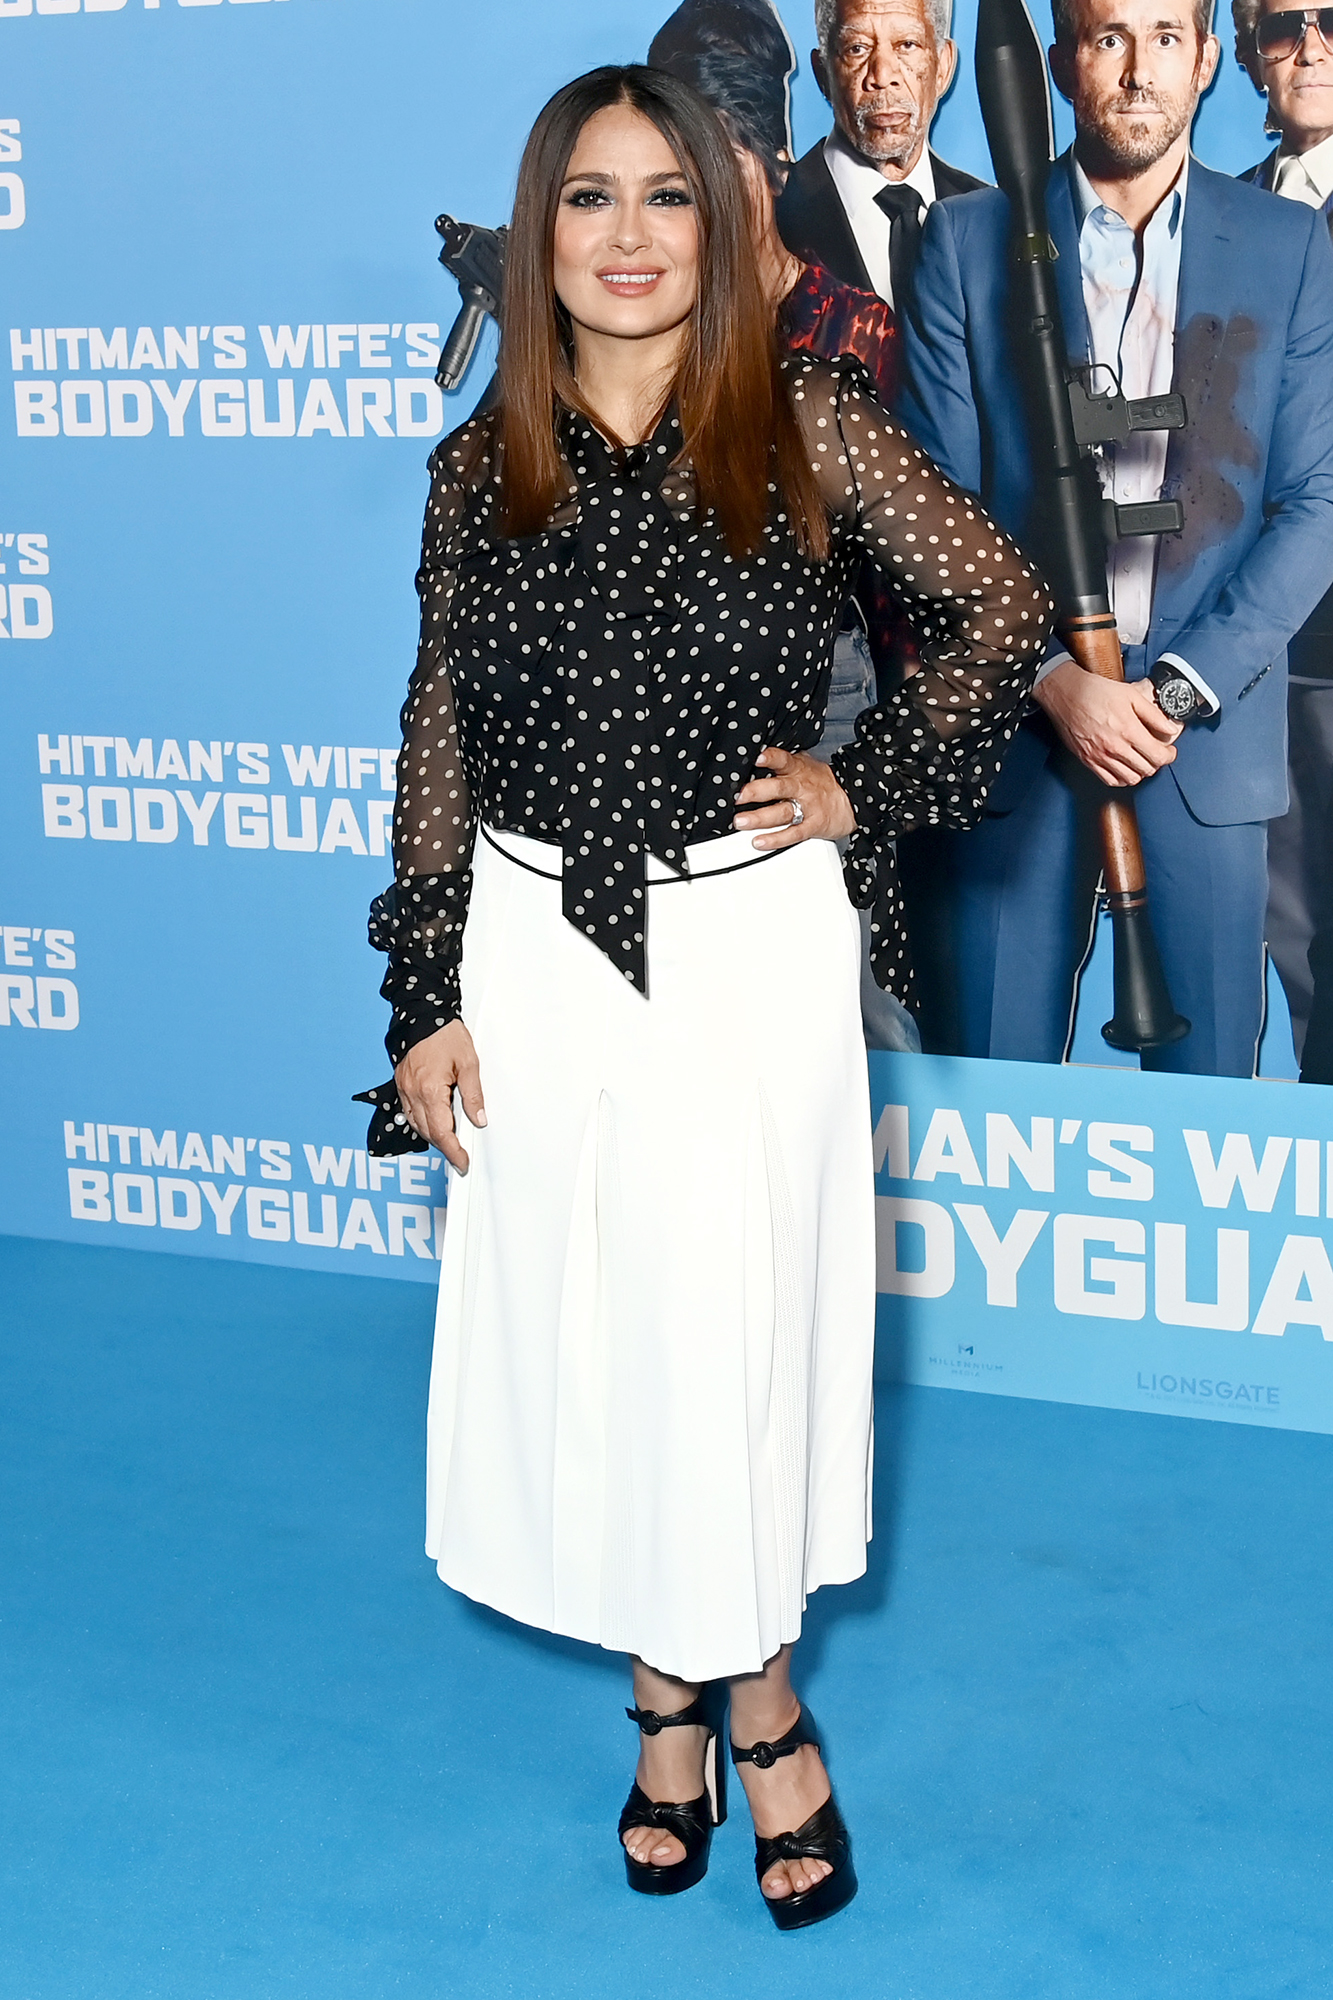 """Salma Hayek attends the """"Hitman's Wife's Bodyguard"""" special screening at Cineworld Leicester Square on June 14, 2021 in London, England"""